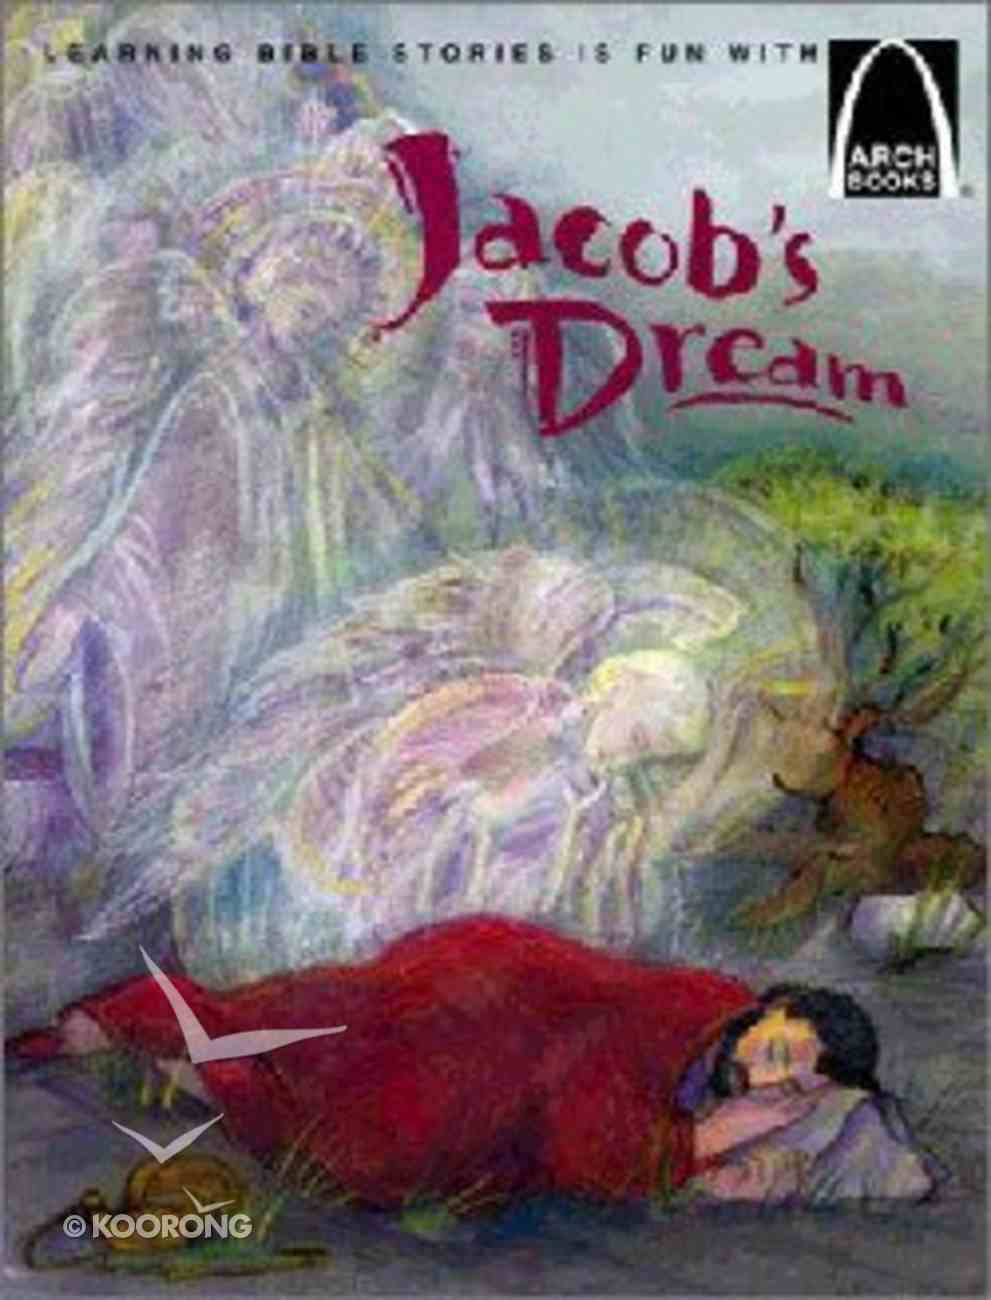 Jacob's Dream (Arch Books Series) Paperback